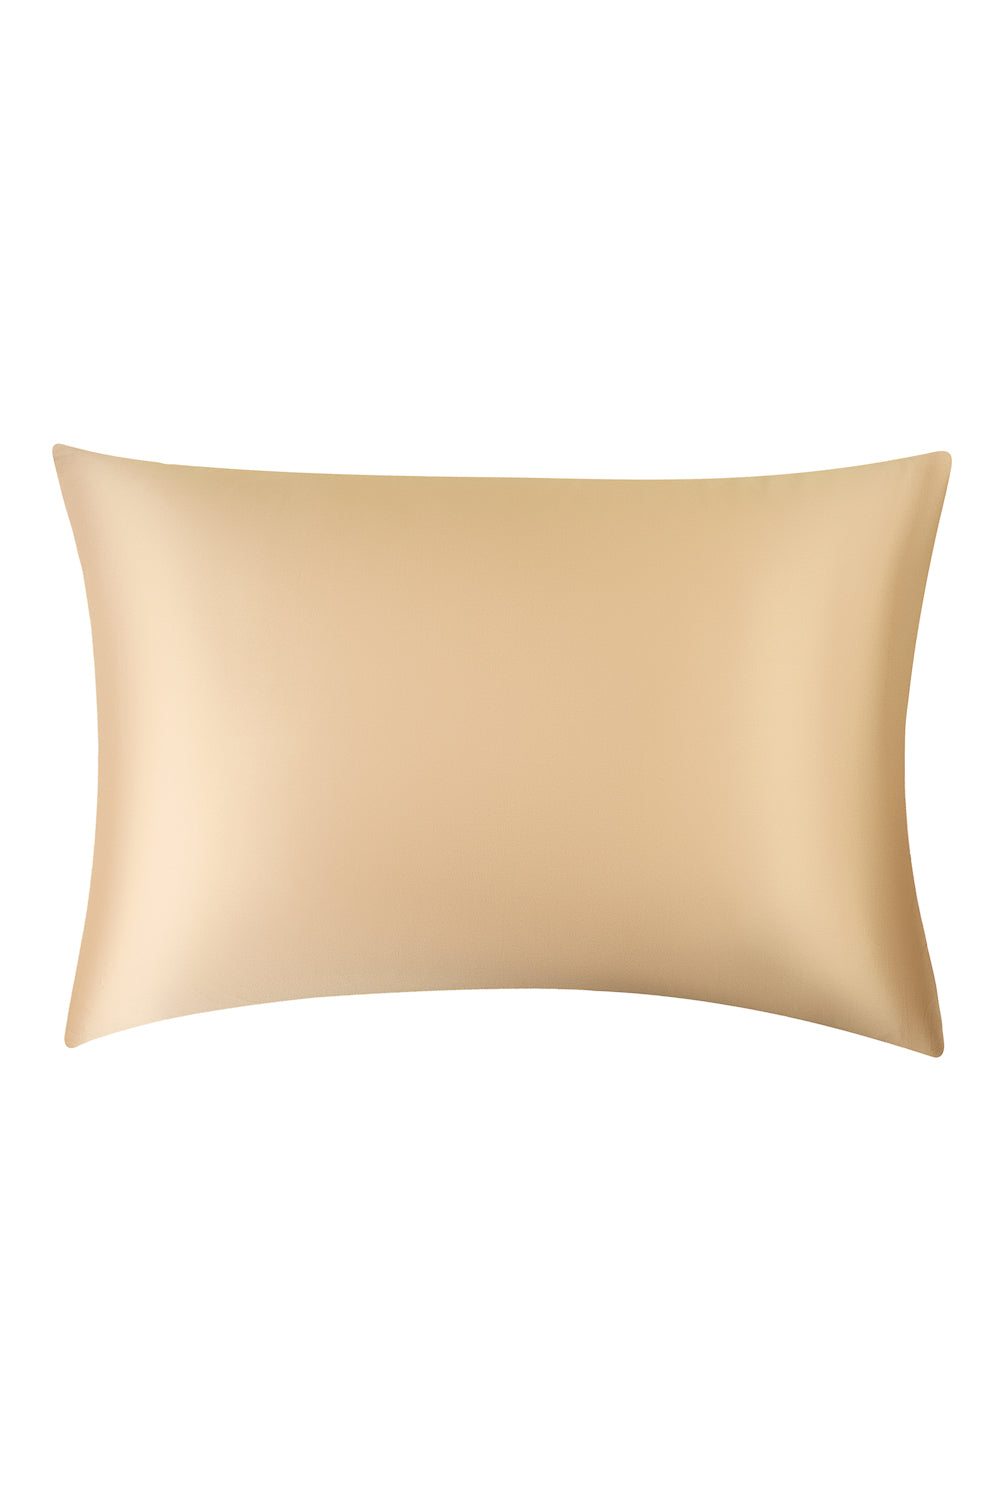 Silk Pillow Case in Gold Pearl